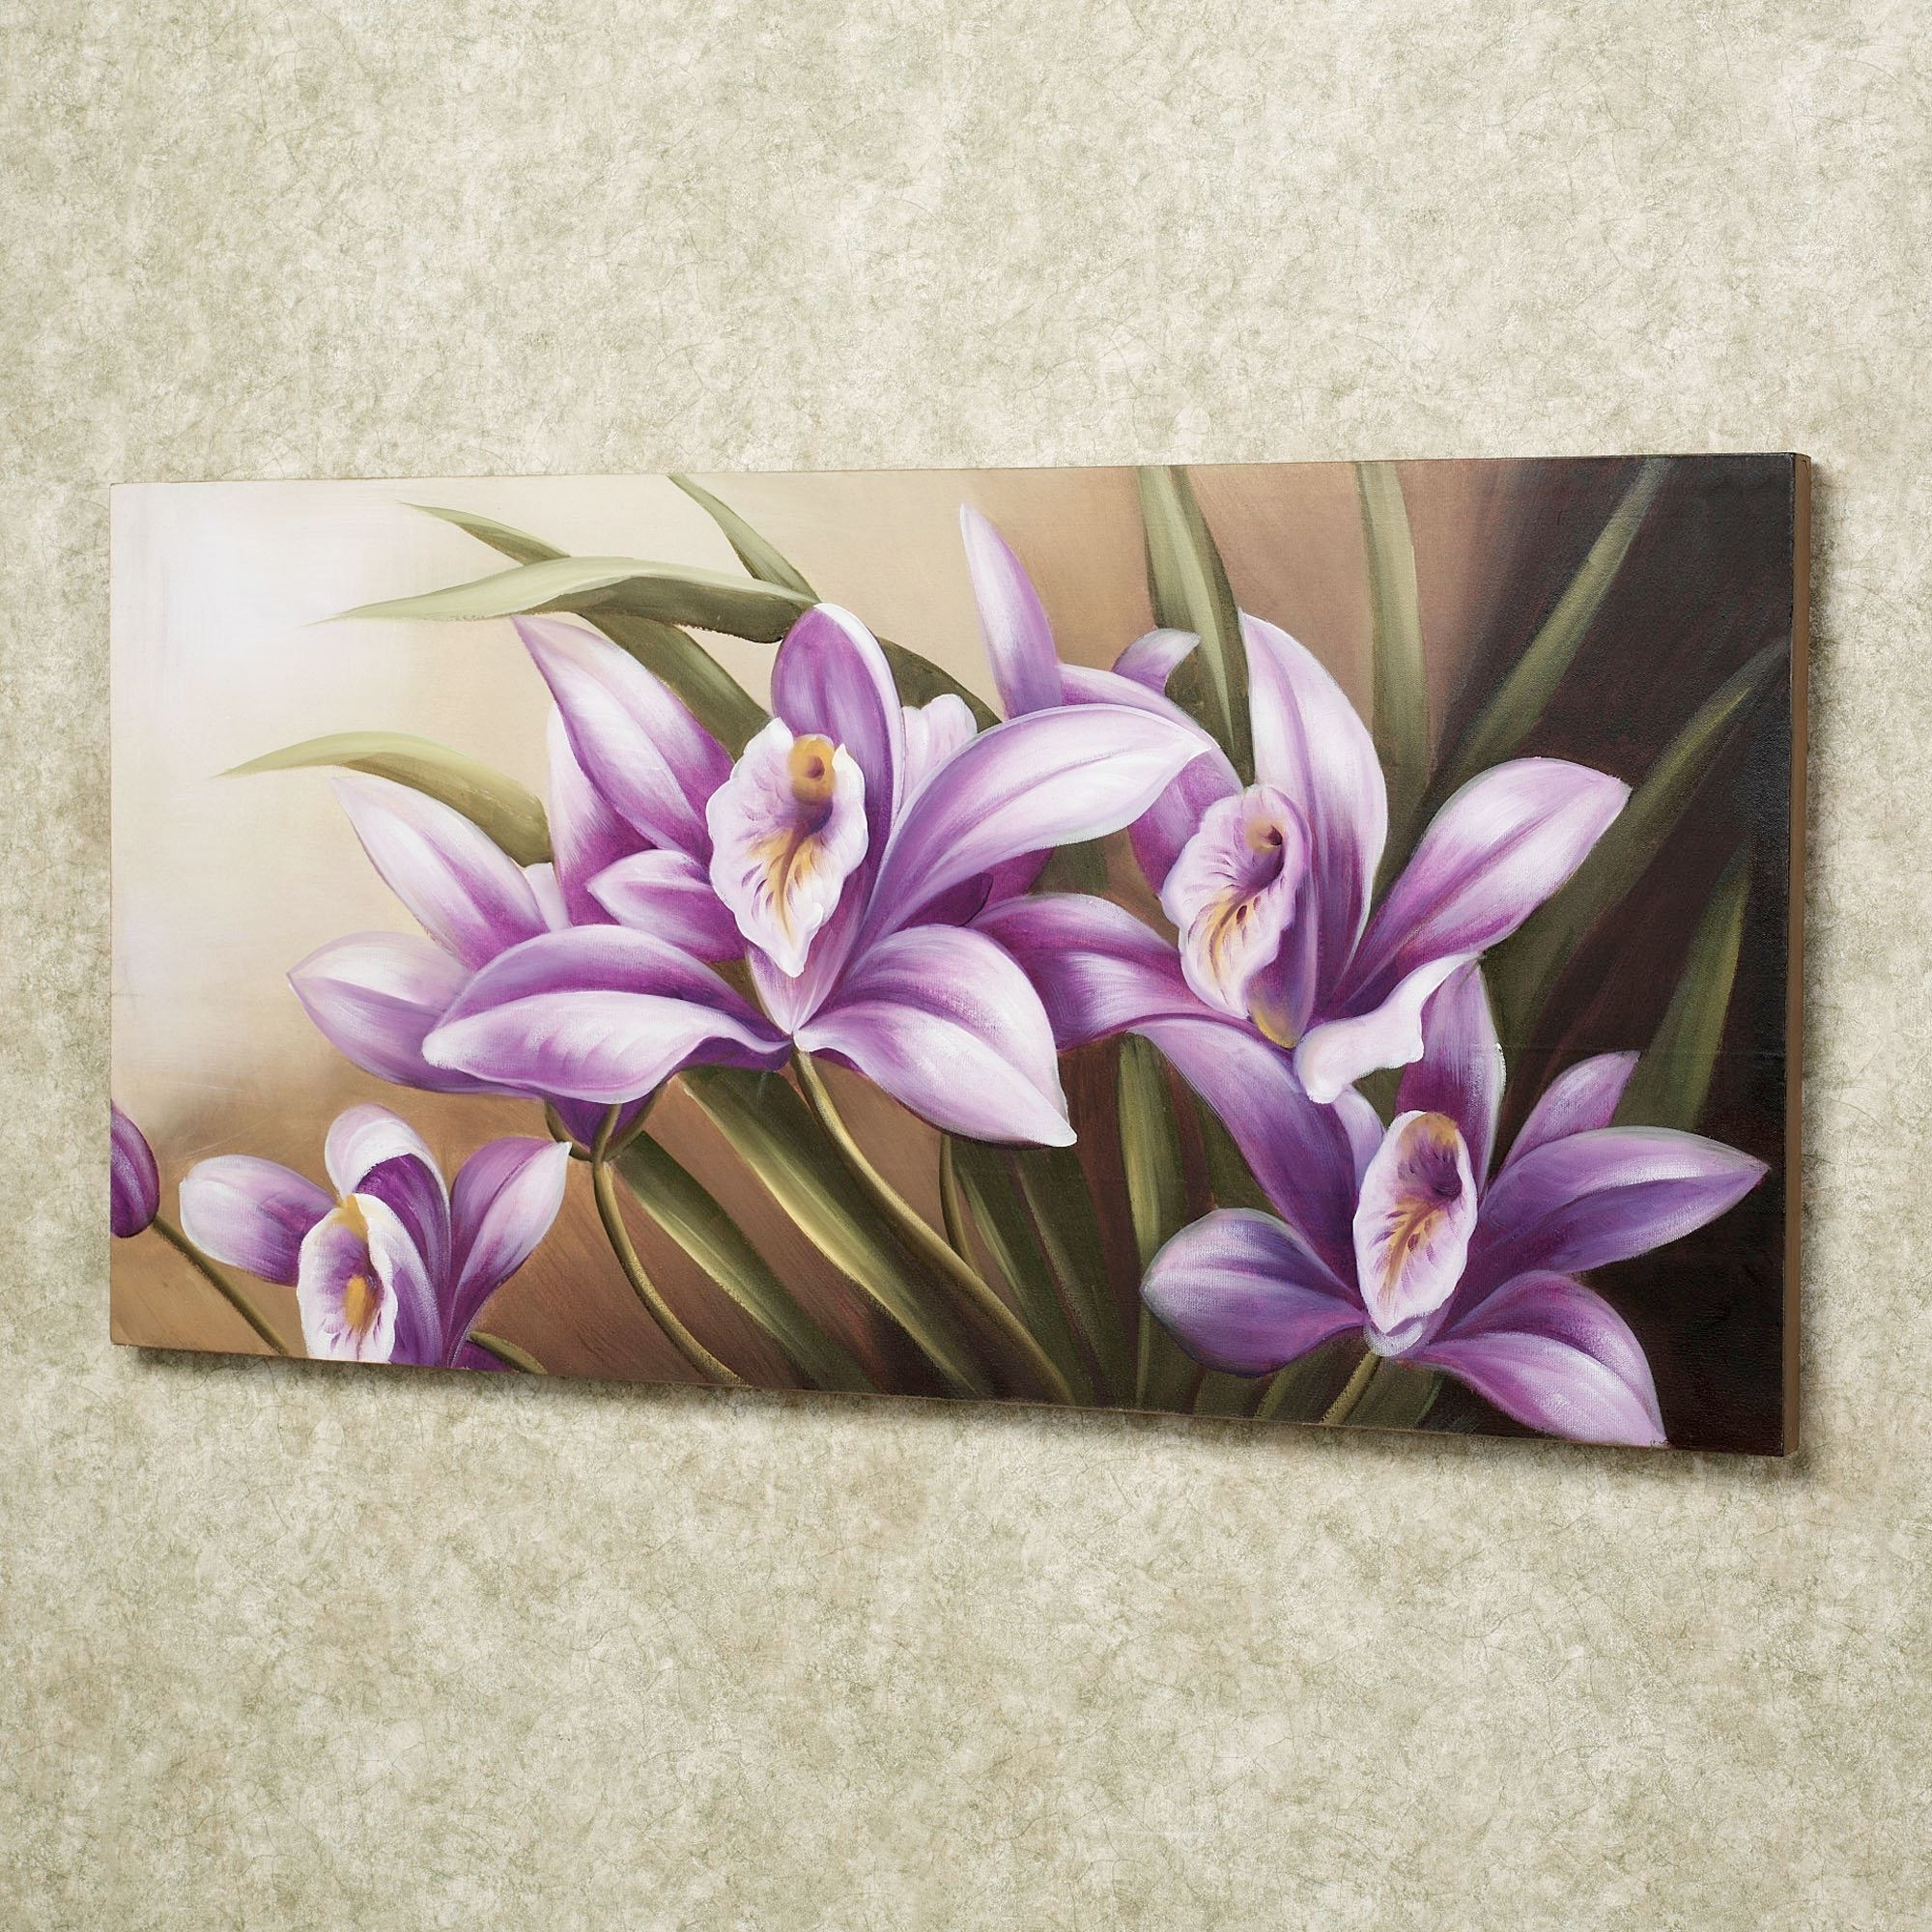 2018 Floral Wall Art Throughout Wild Orchid Handpainted Floral Canvas Wall Art (View 6 of 15)